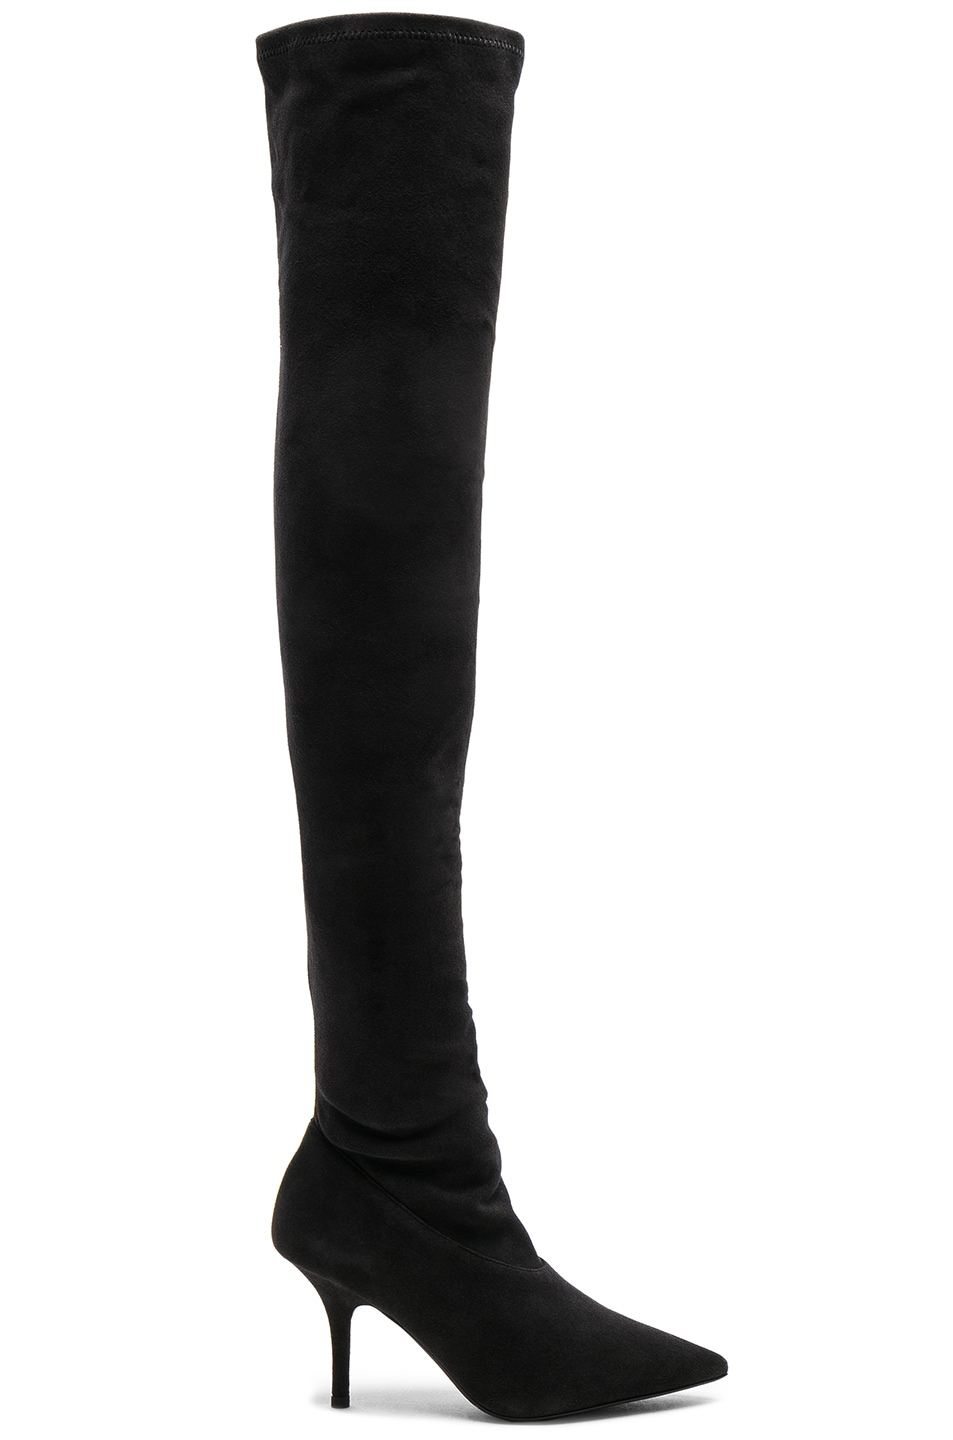 Black Suede Thigh-High Boots